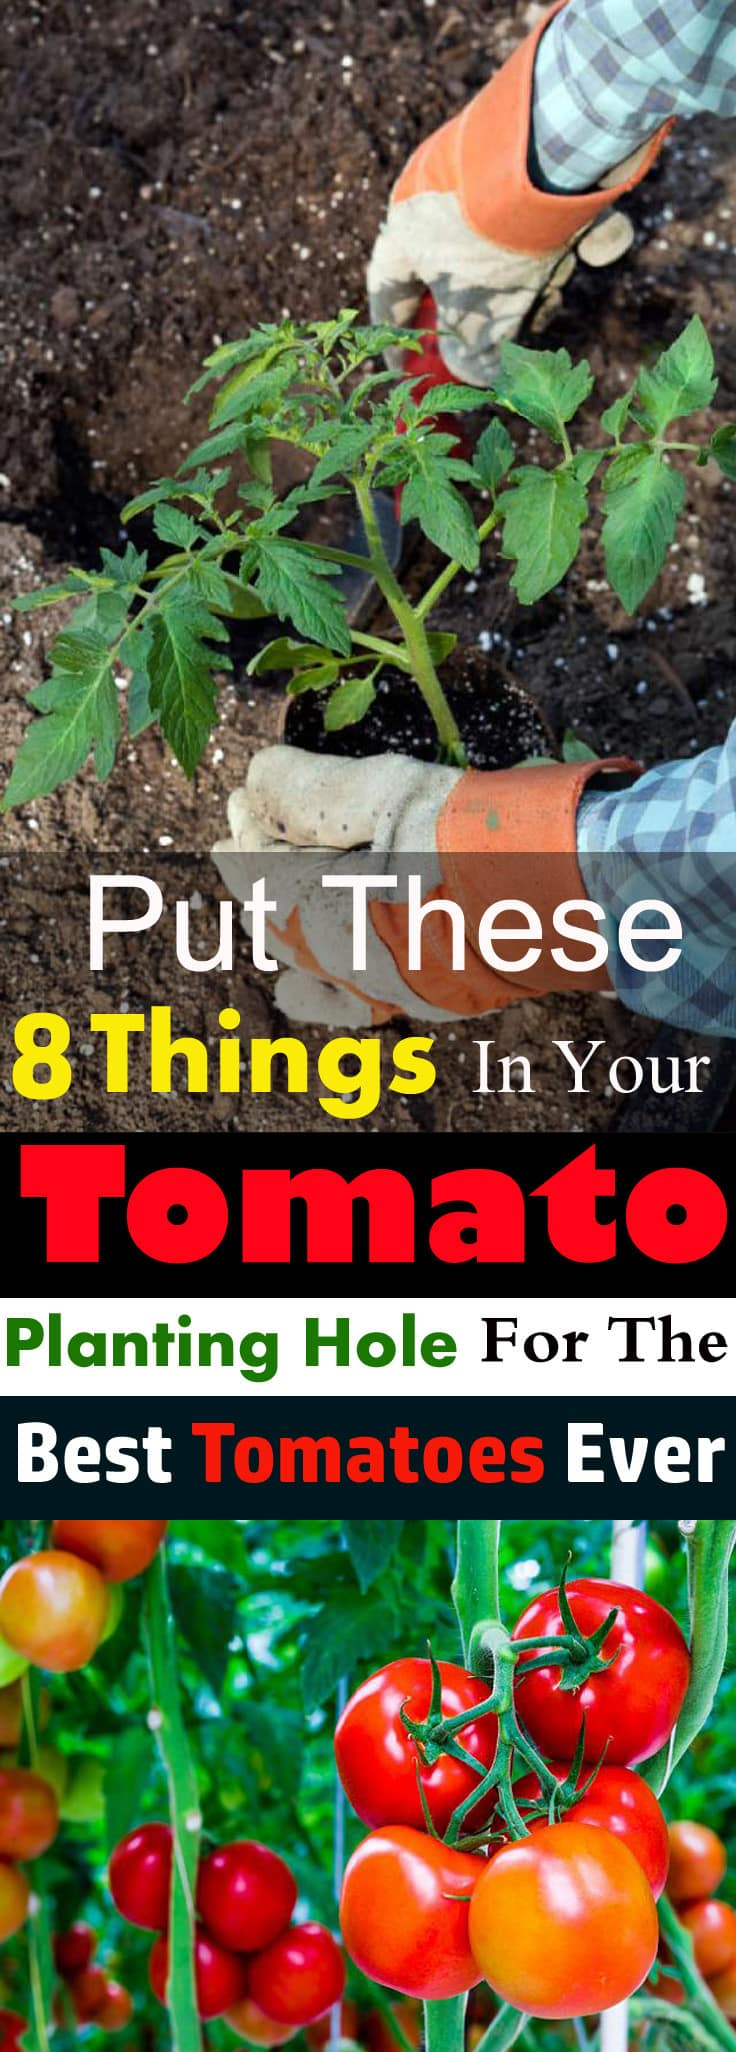 Put These Things in Your TOMATO Planting Hole For The Best Tomatoes Ever 1 Coffee Groundsas Fertilizer